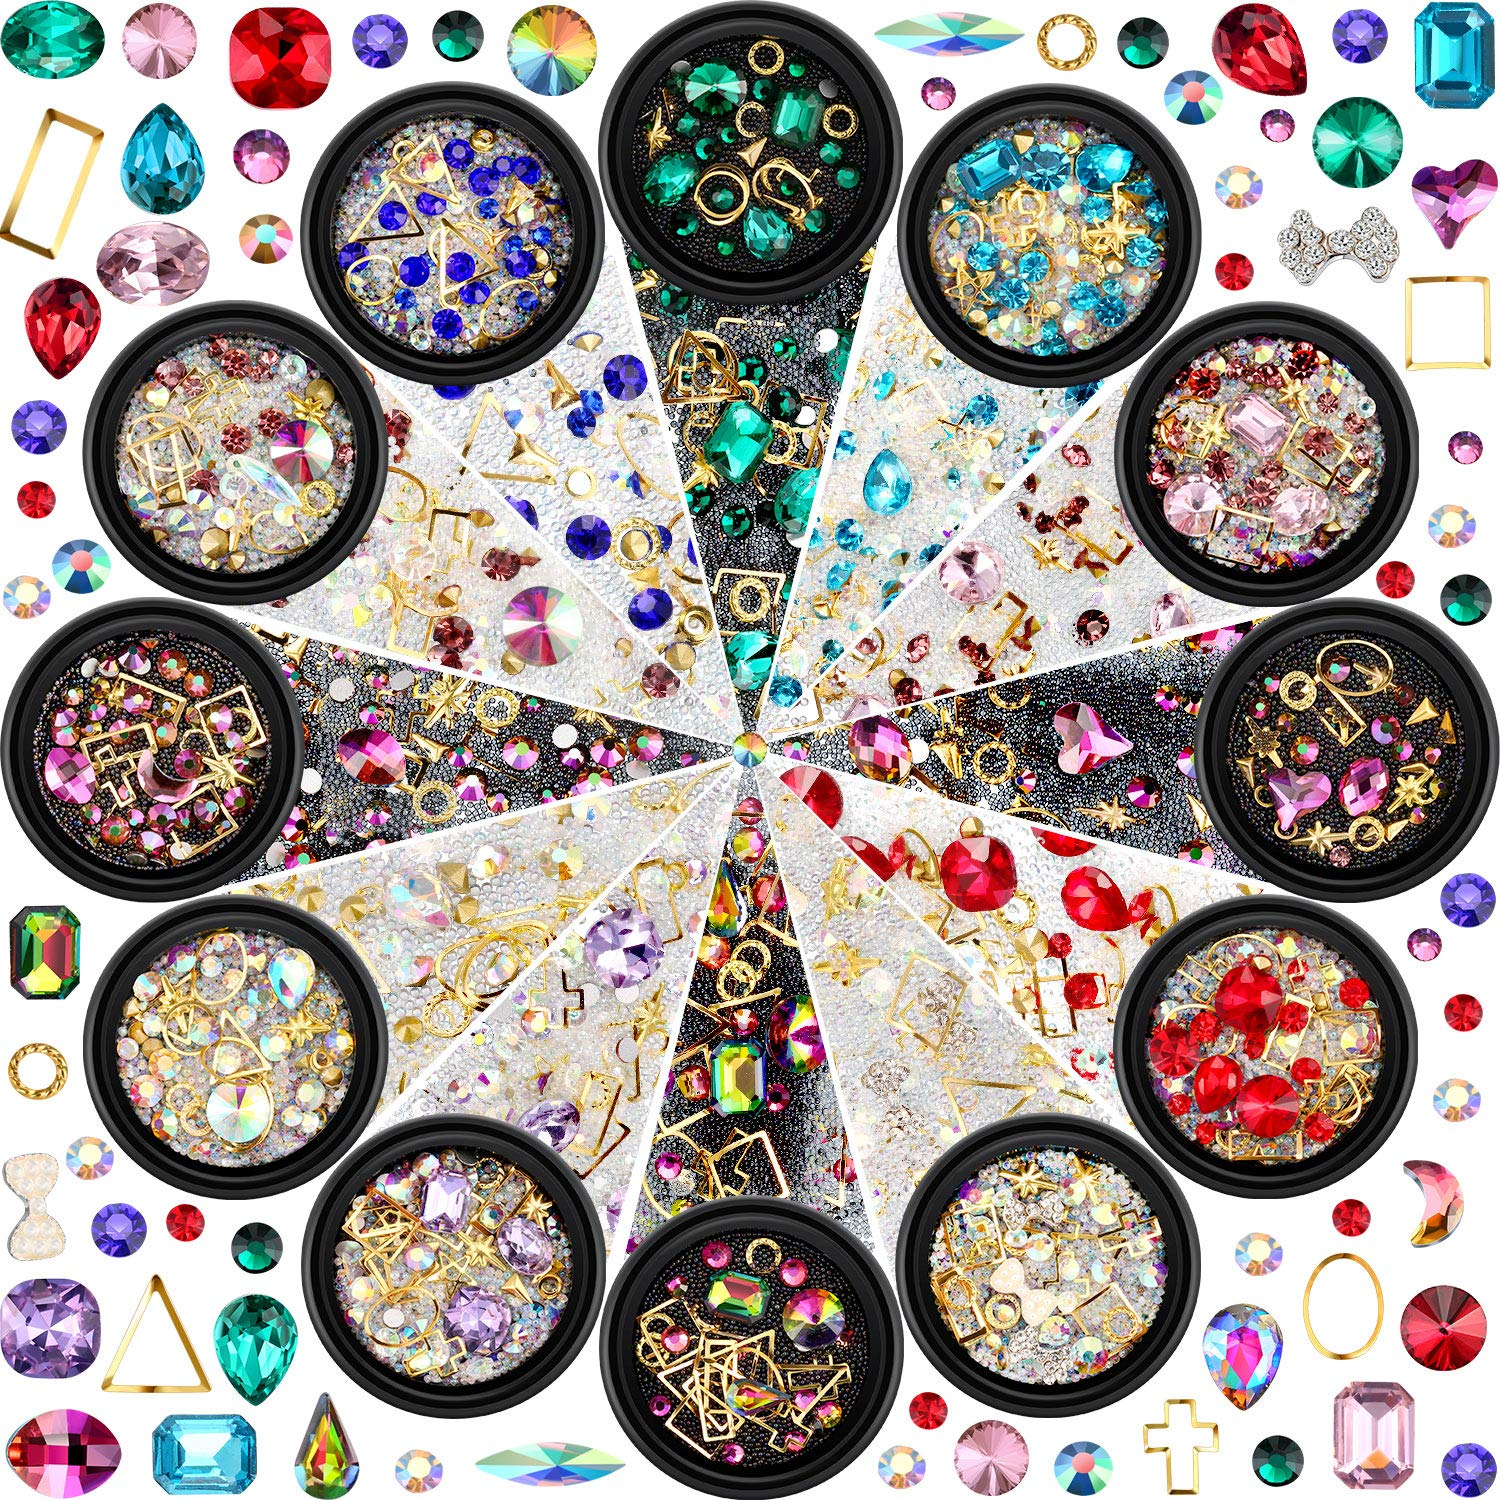 12 Boxes Nail Art Rhinestones Diamonds Beads Mixed Size Flat Back Crystal Rhinestones for DIY Crafting Jewelry Makeup 3D Decorations, 12 Styles (Style A) by Blulu